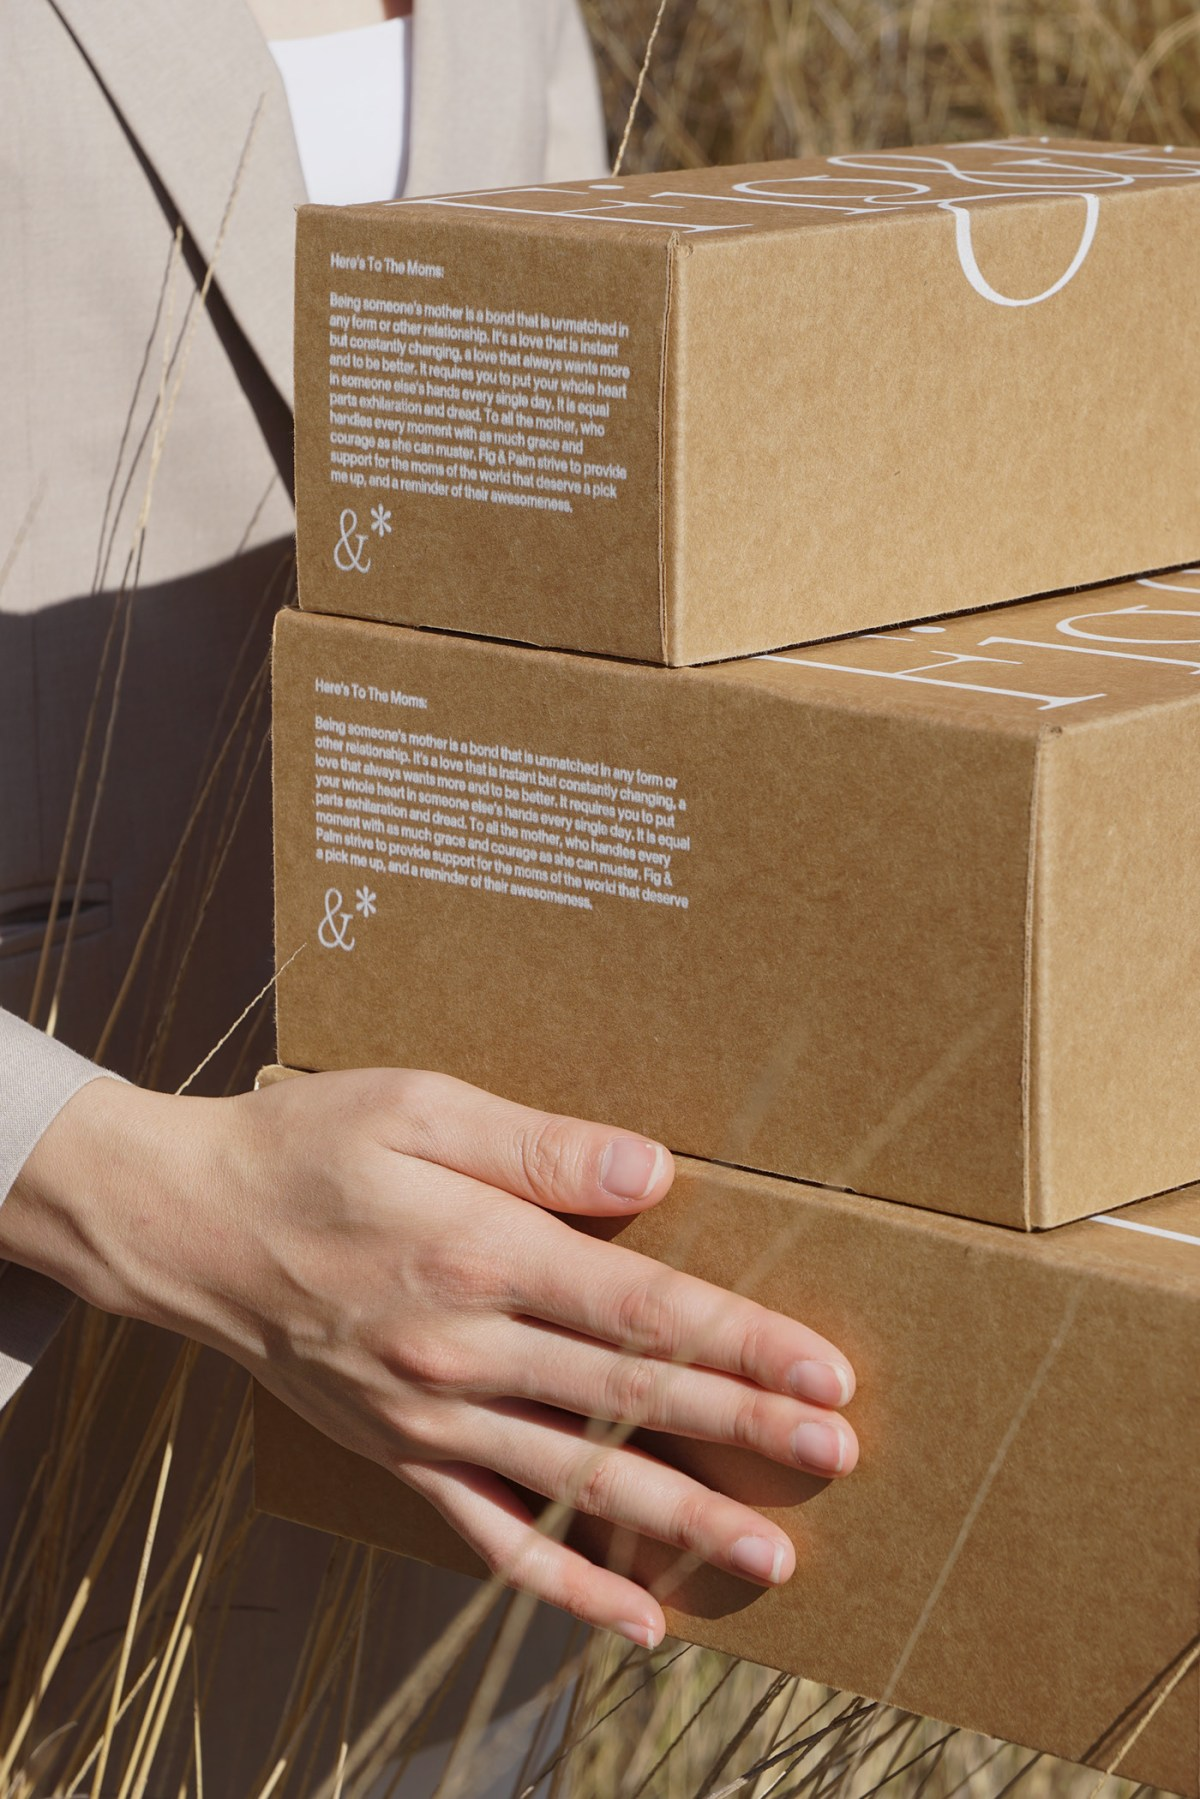 example of volumes of packaging